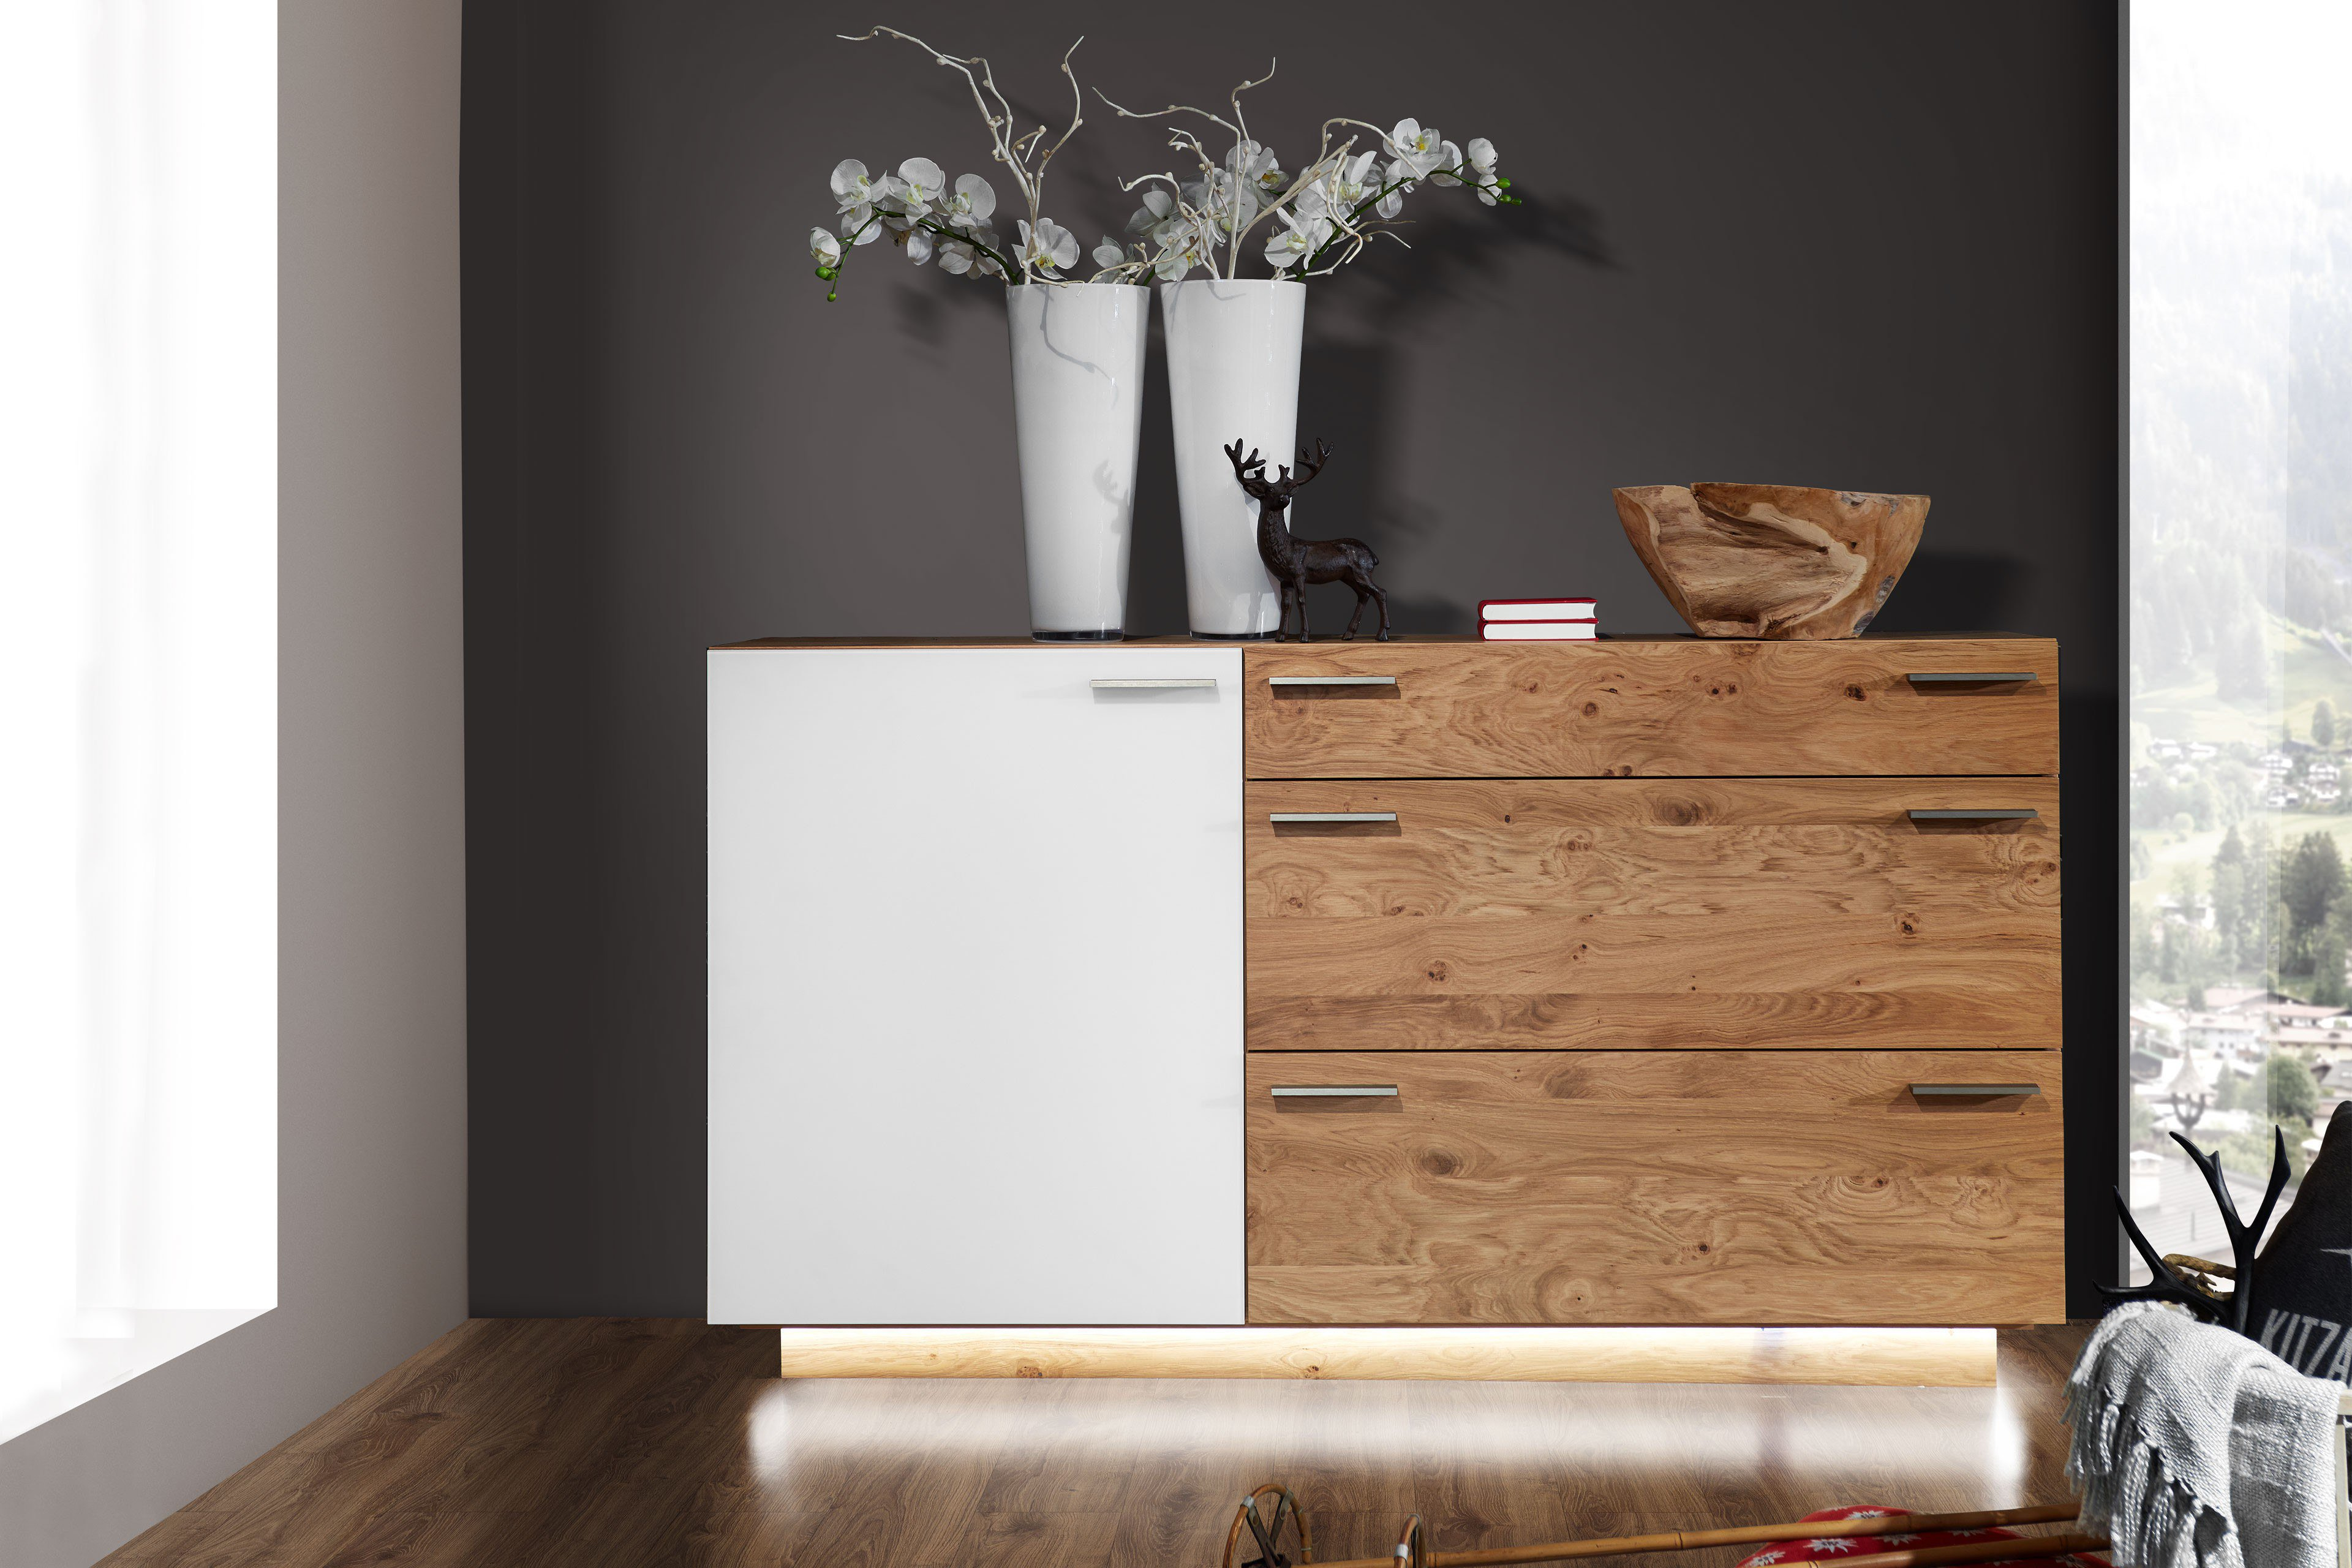 schr der wohnm bel sideboard montana kernasteiche snow m bel letz ihr online shop. Black Bedroom Furniture Sets. Home Design Ideas